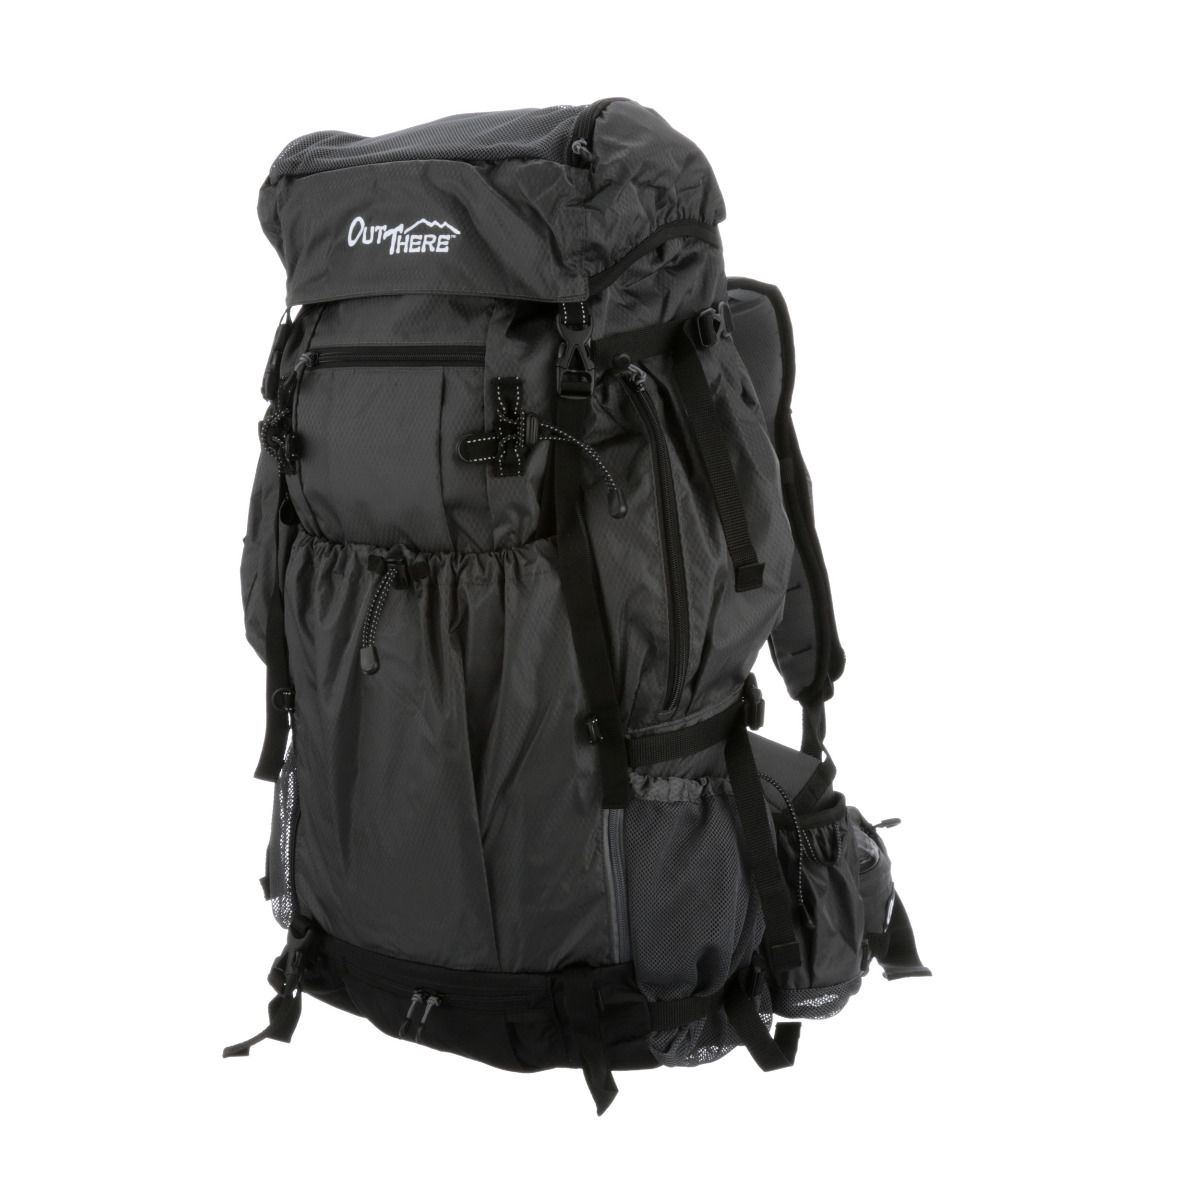 Gear Recommendation: Out There USA's BackPack